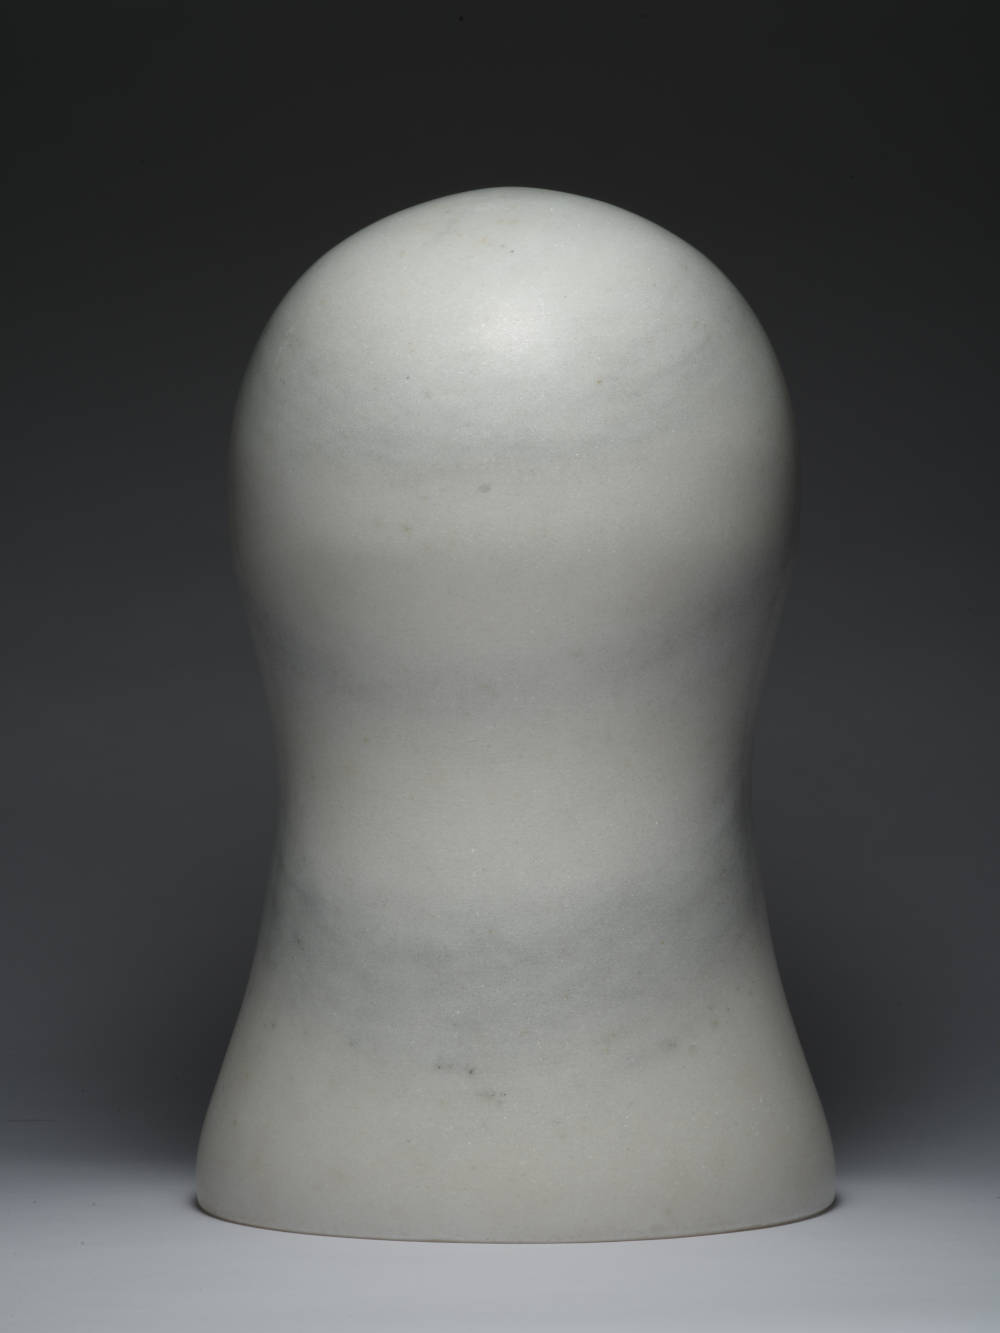 Zhao Zhao, Control 19, 2019. Natural marble 16.54 x 9.84 x 9.84 in (42 x 25 x 25 cm) Courtesy of the artist and Roberts Projects, Los Angeles, California